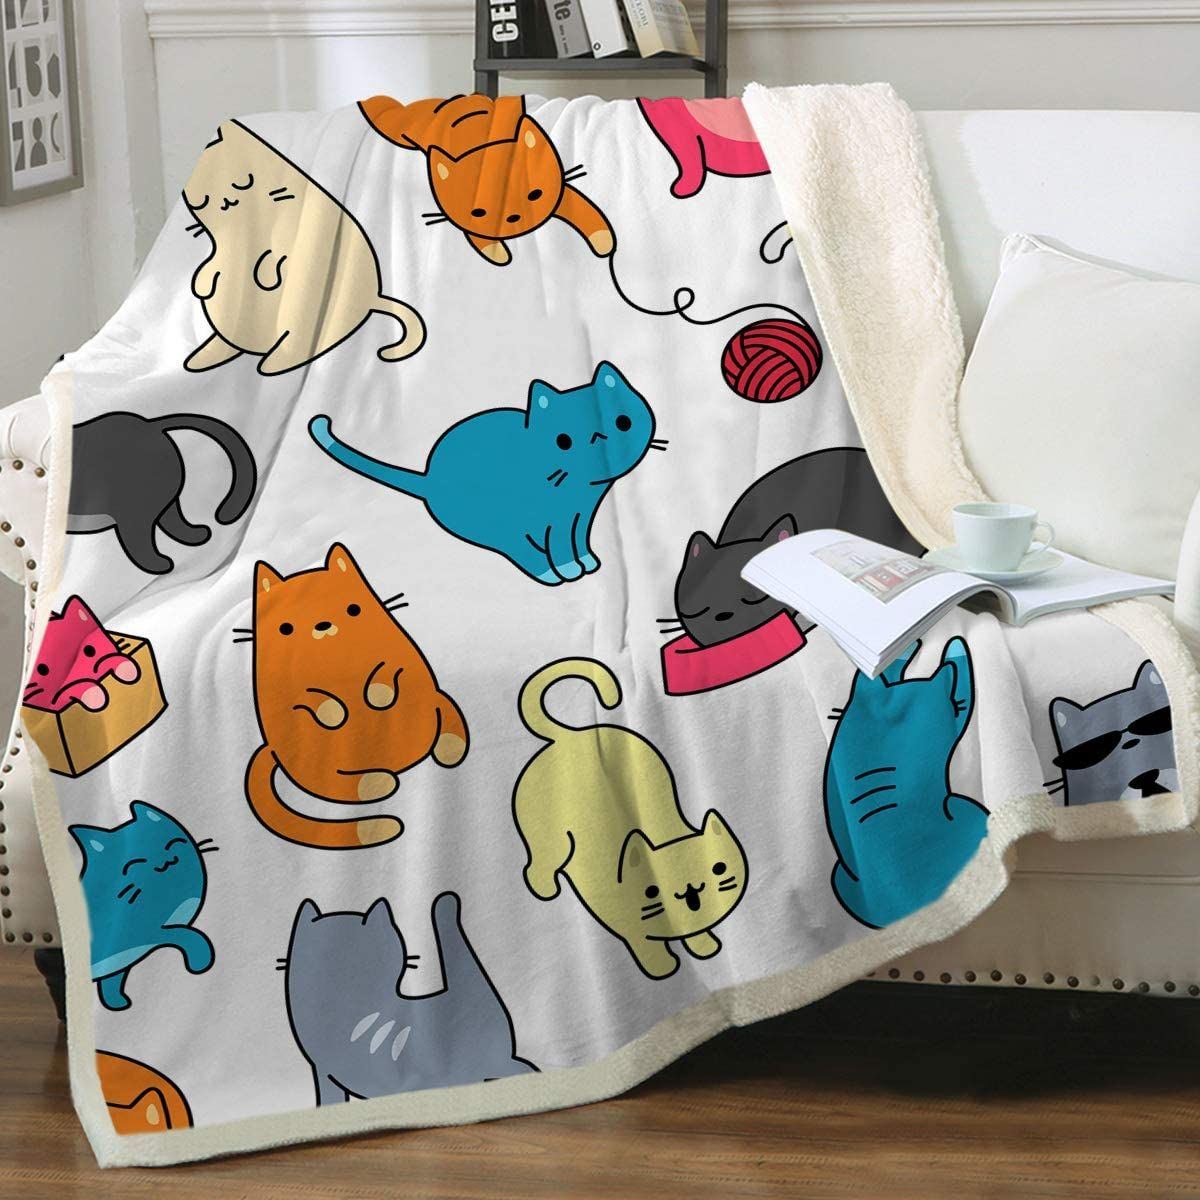 Cat Fleece Throw Blanket As Gifts For Cat Lovers Fleece Throw Blanket Customized Blankets Teacup Cats